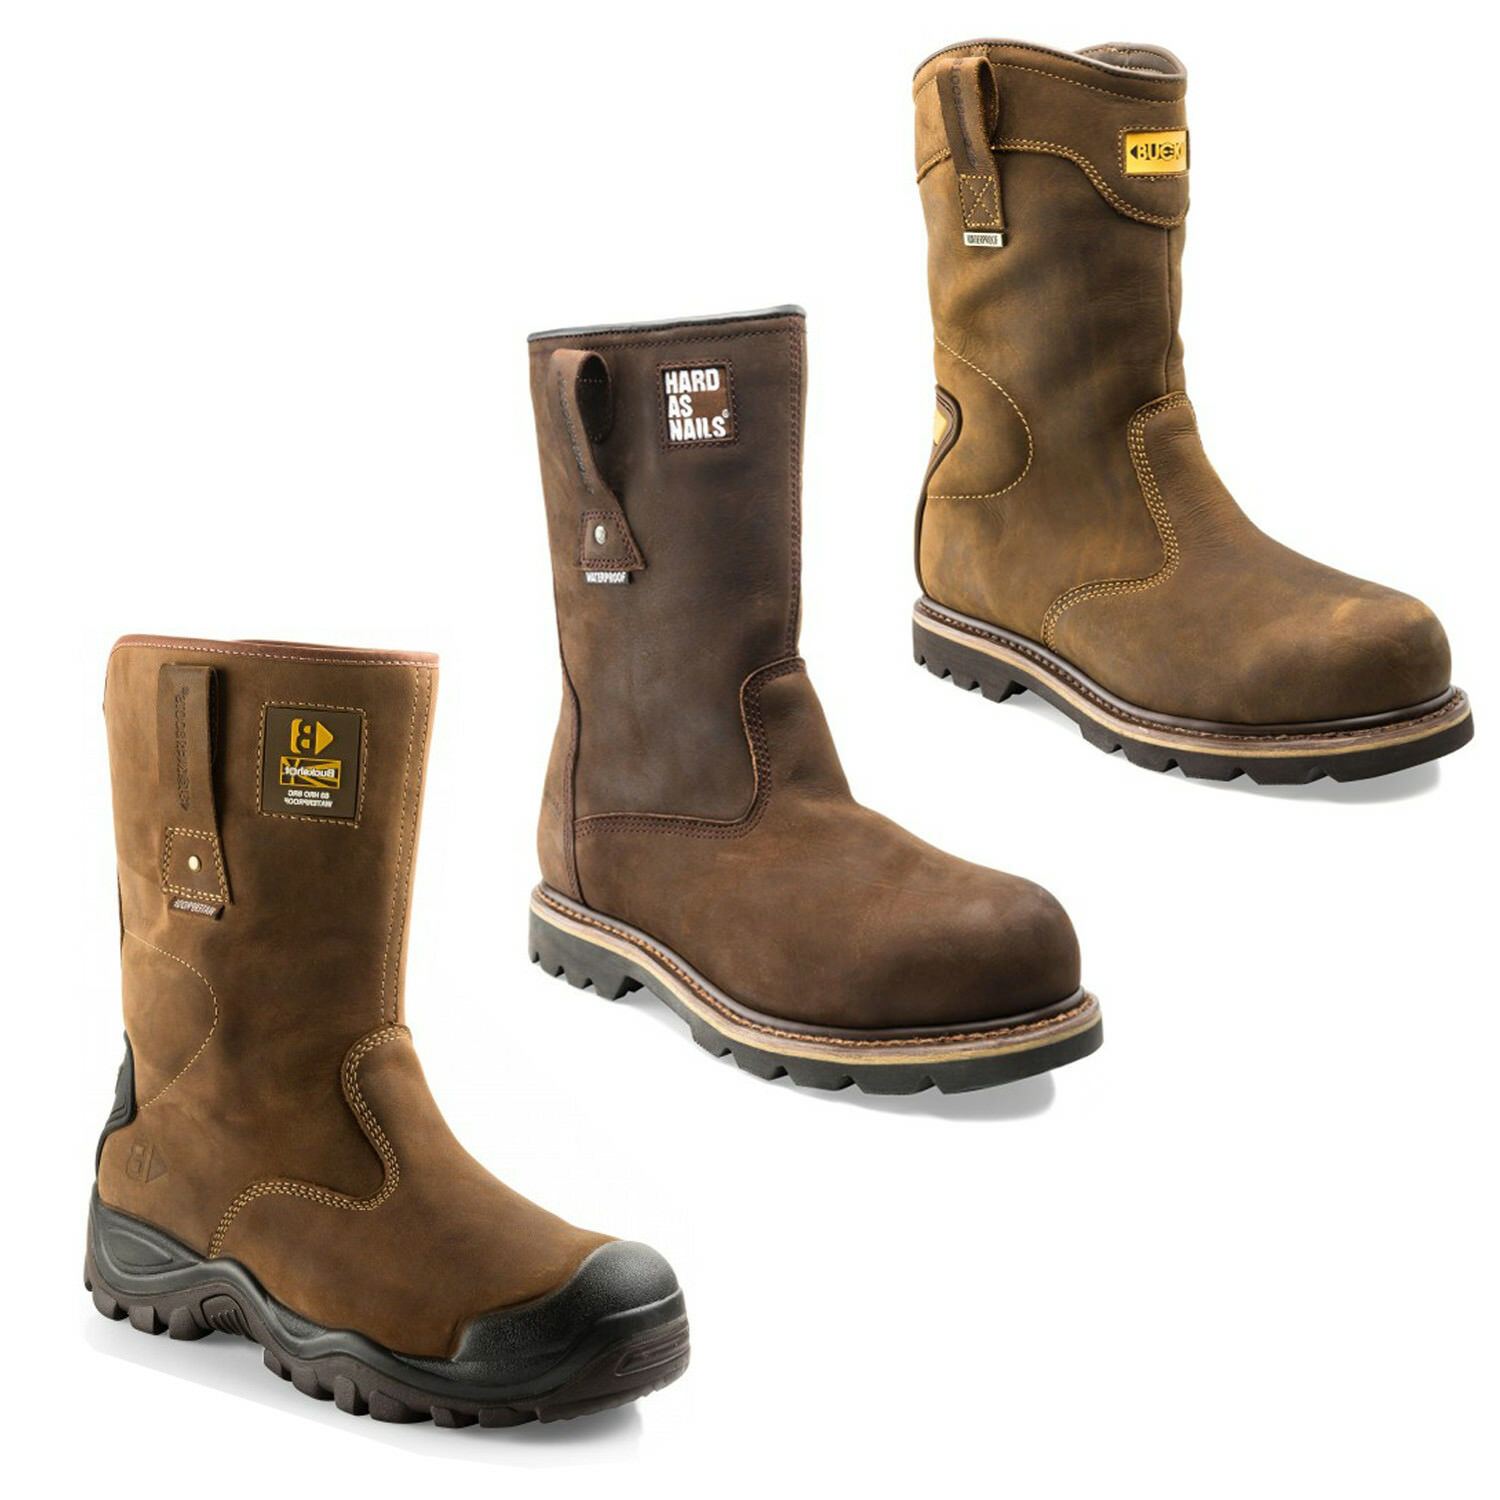 Buckler Waterproof Safety Rigger Styles) botas (Various Talla and Styles) Rigger Hombres Workwear 1e98cd